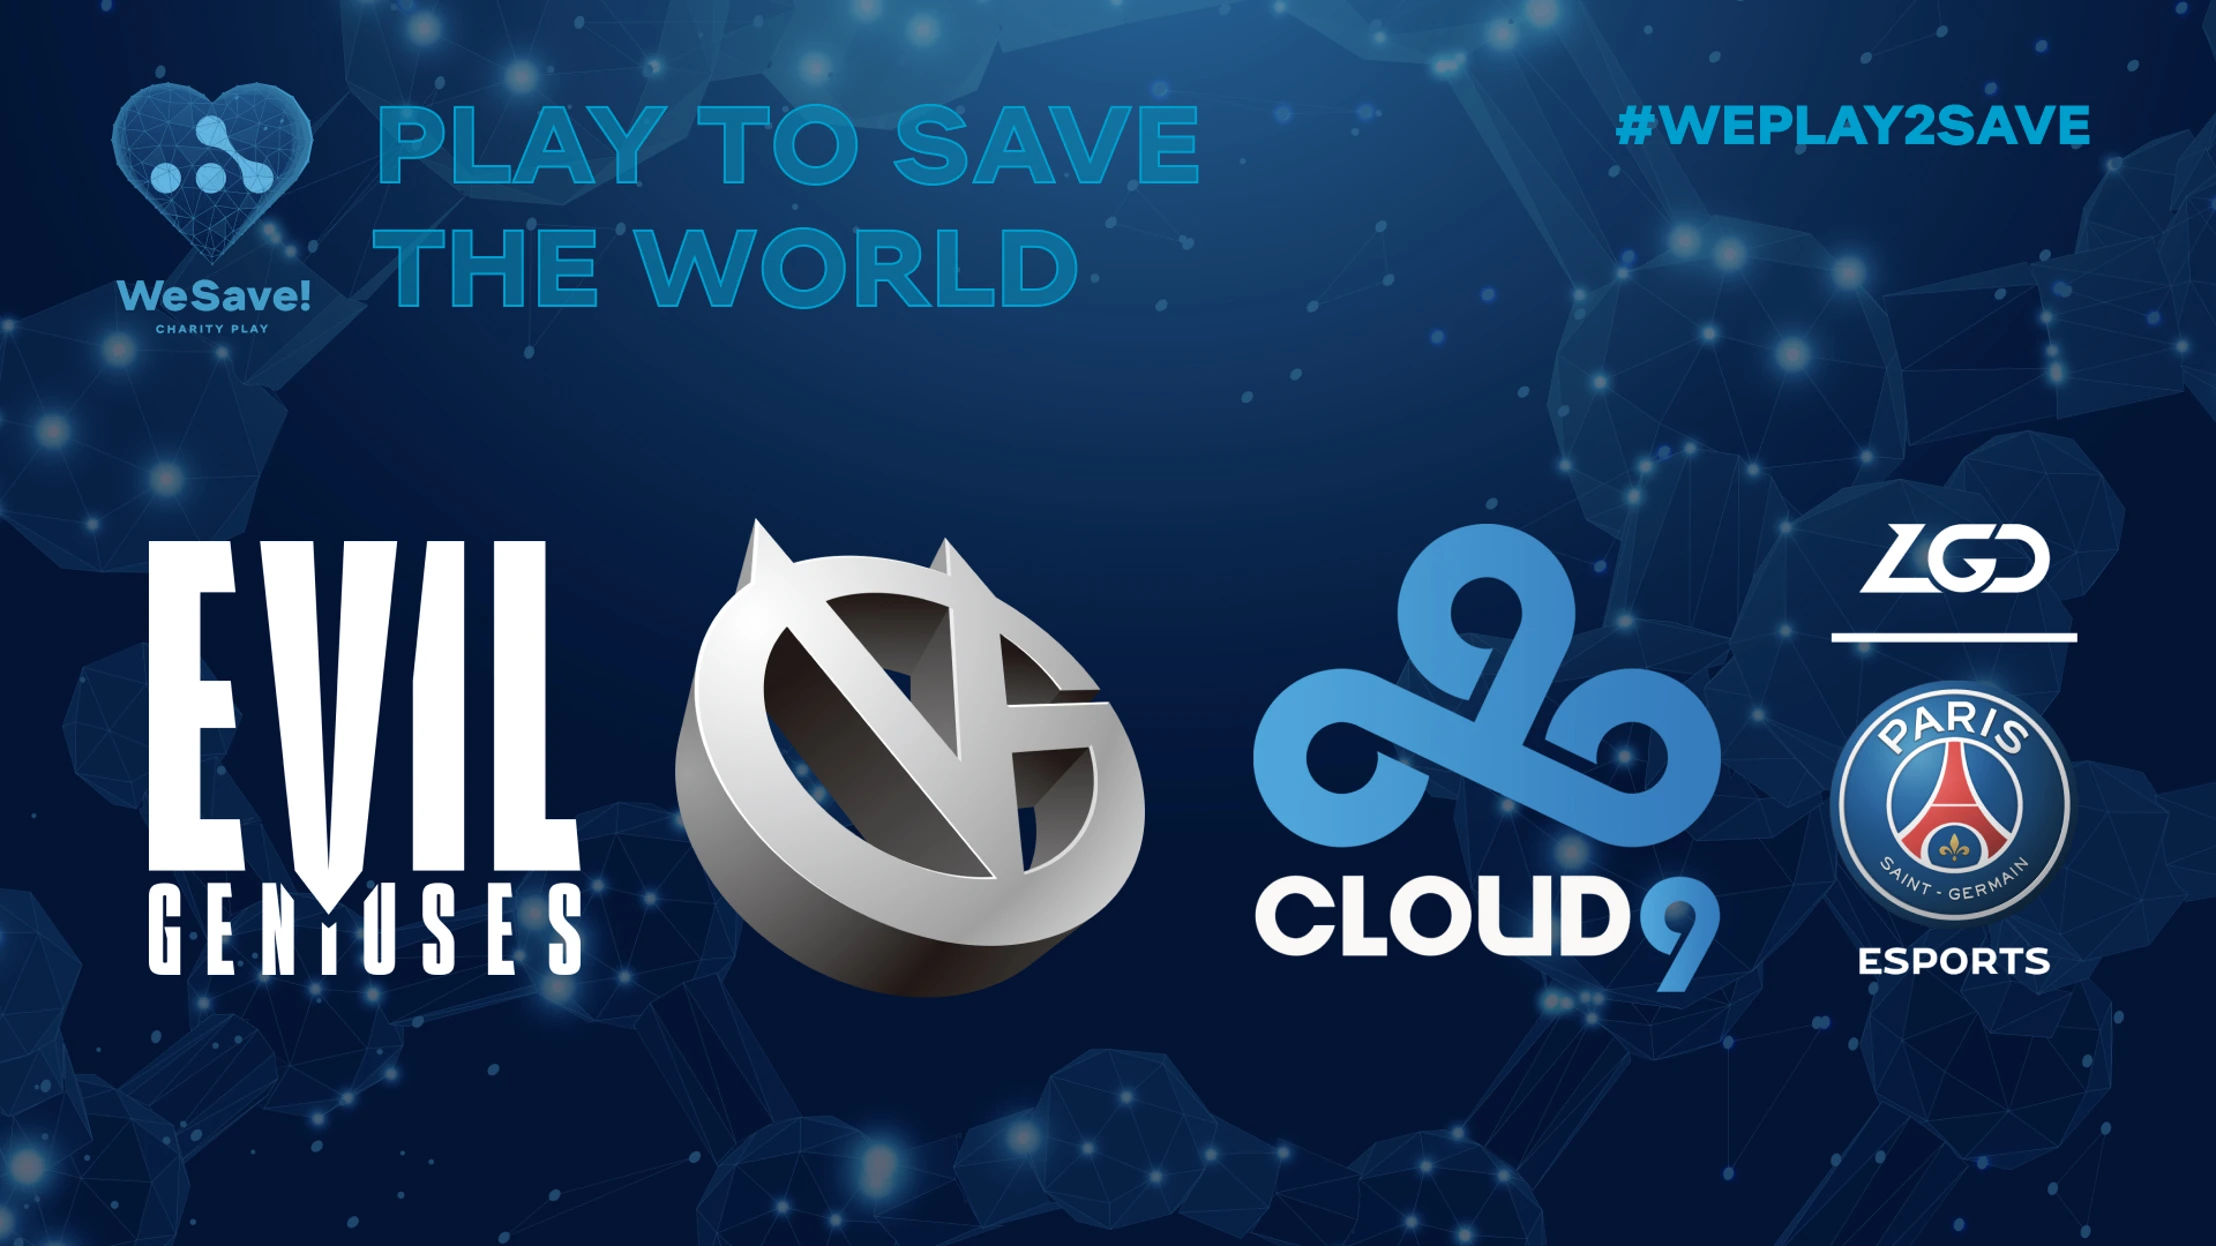 Cloud9, VG, PSG.LGD, and EG join WeSave! Charity Play